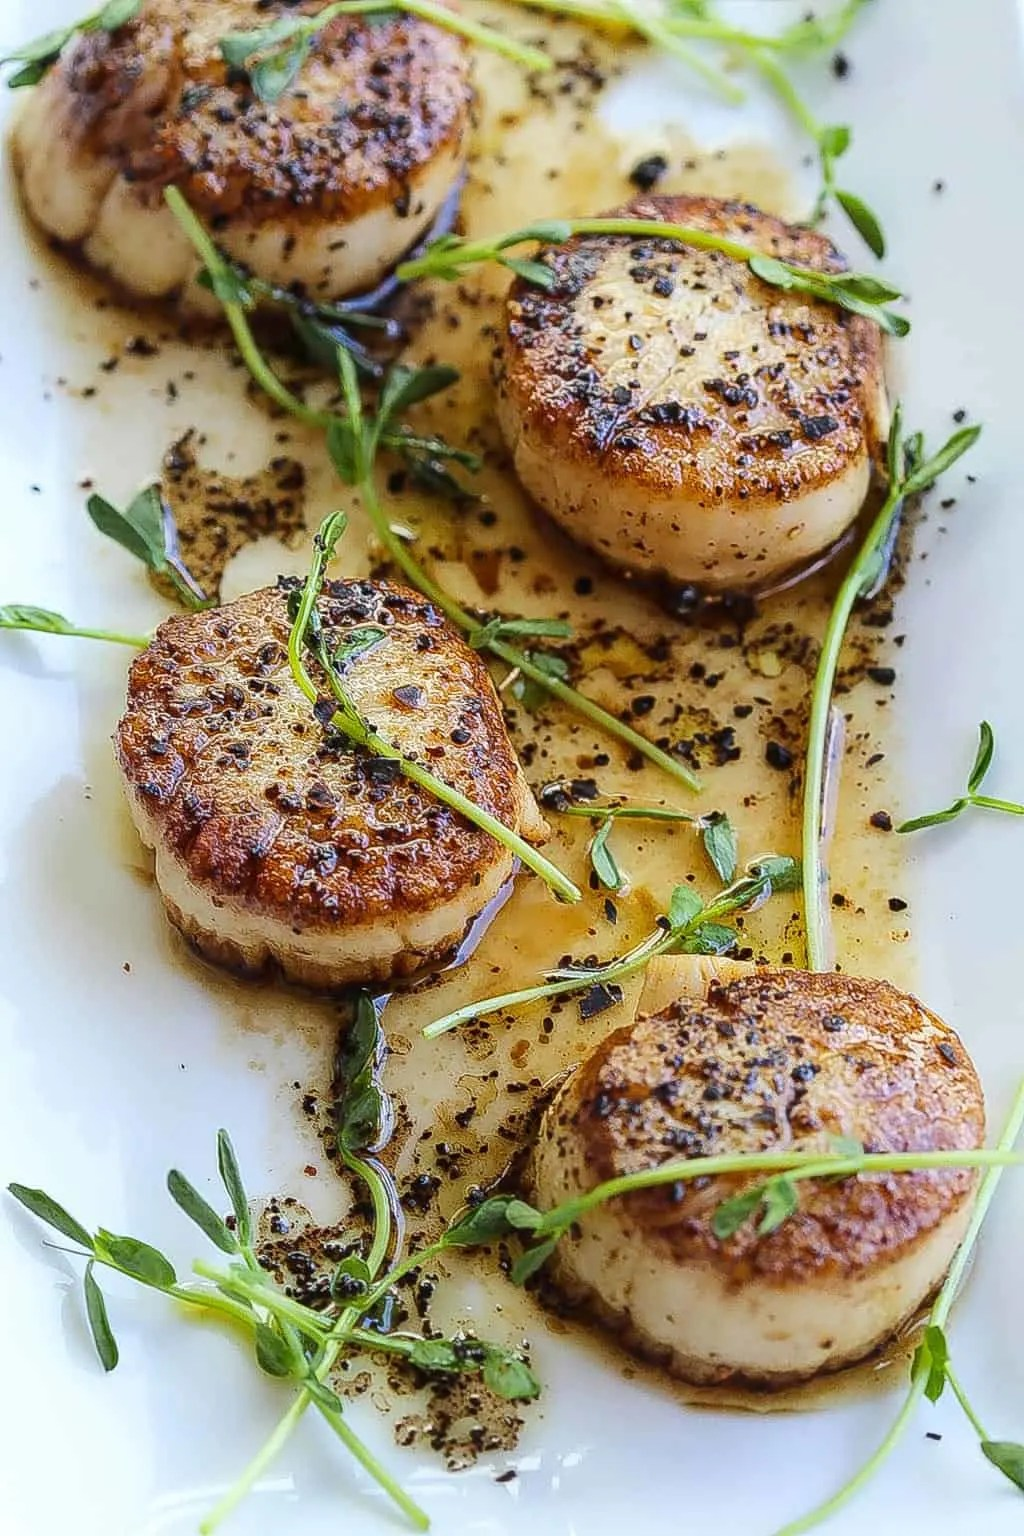 pan-seared scallops recipe plated with herbs and coffee vinaigrette